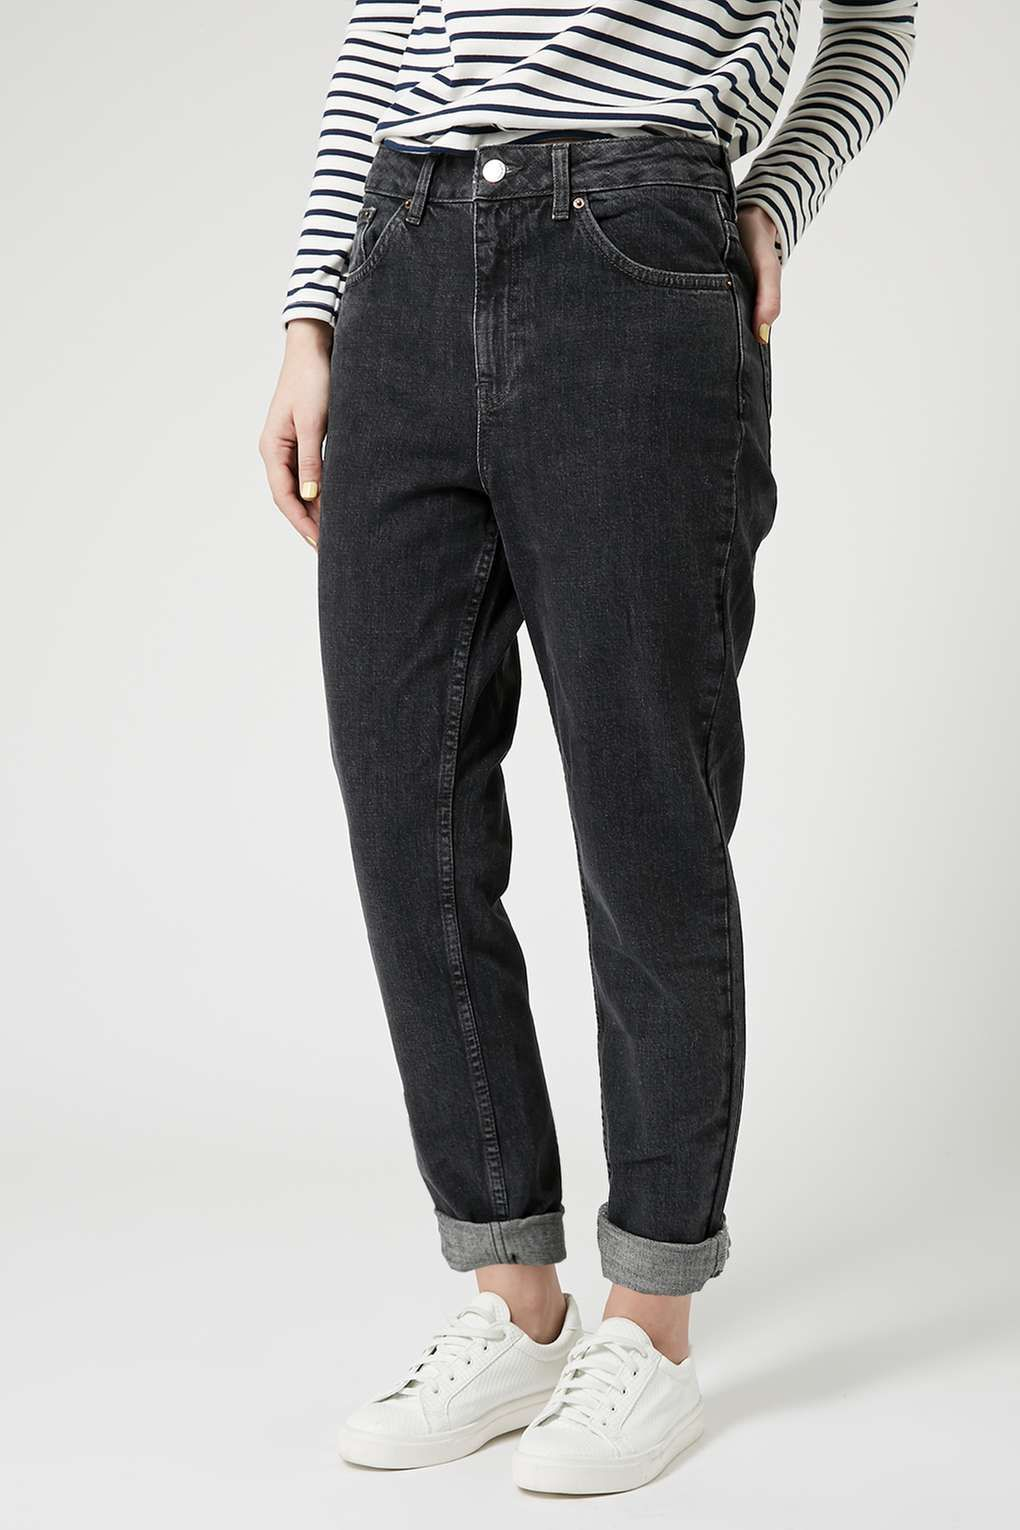 b2f16a2c81b2c Black wash mom jeans, always a style staple for me whatever the season!